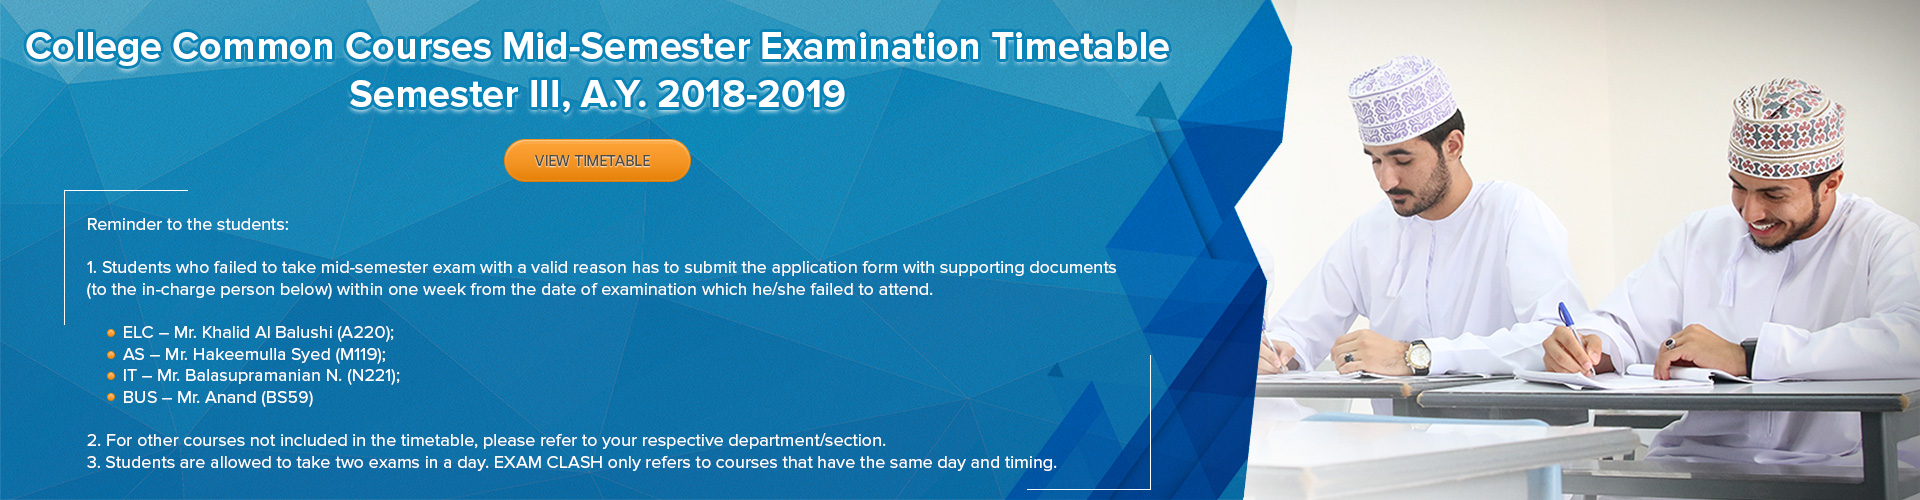 College Common Courses Mid-Semester Examination Timetable Semester III, A.Y. 2018-2019